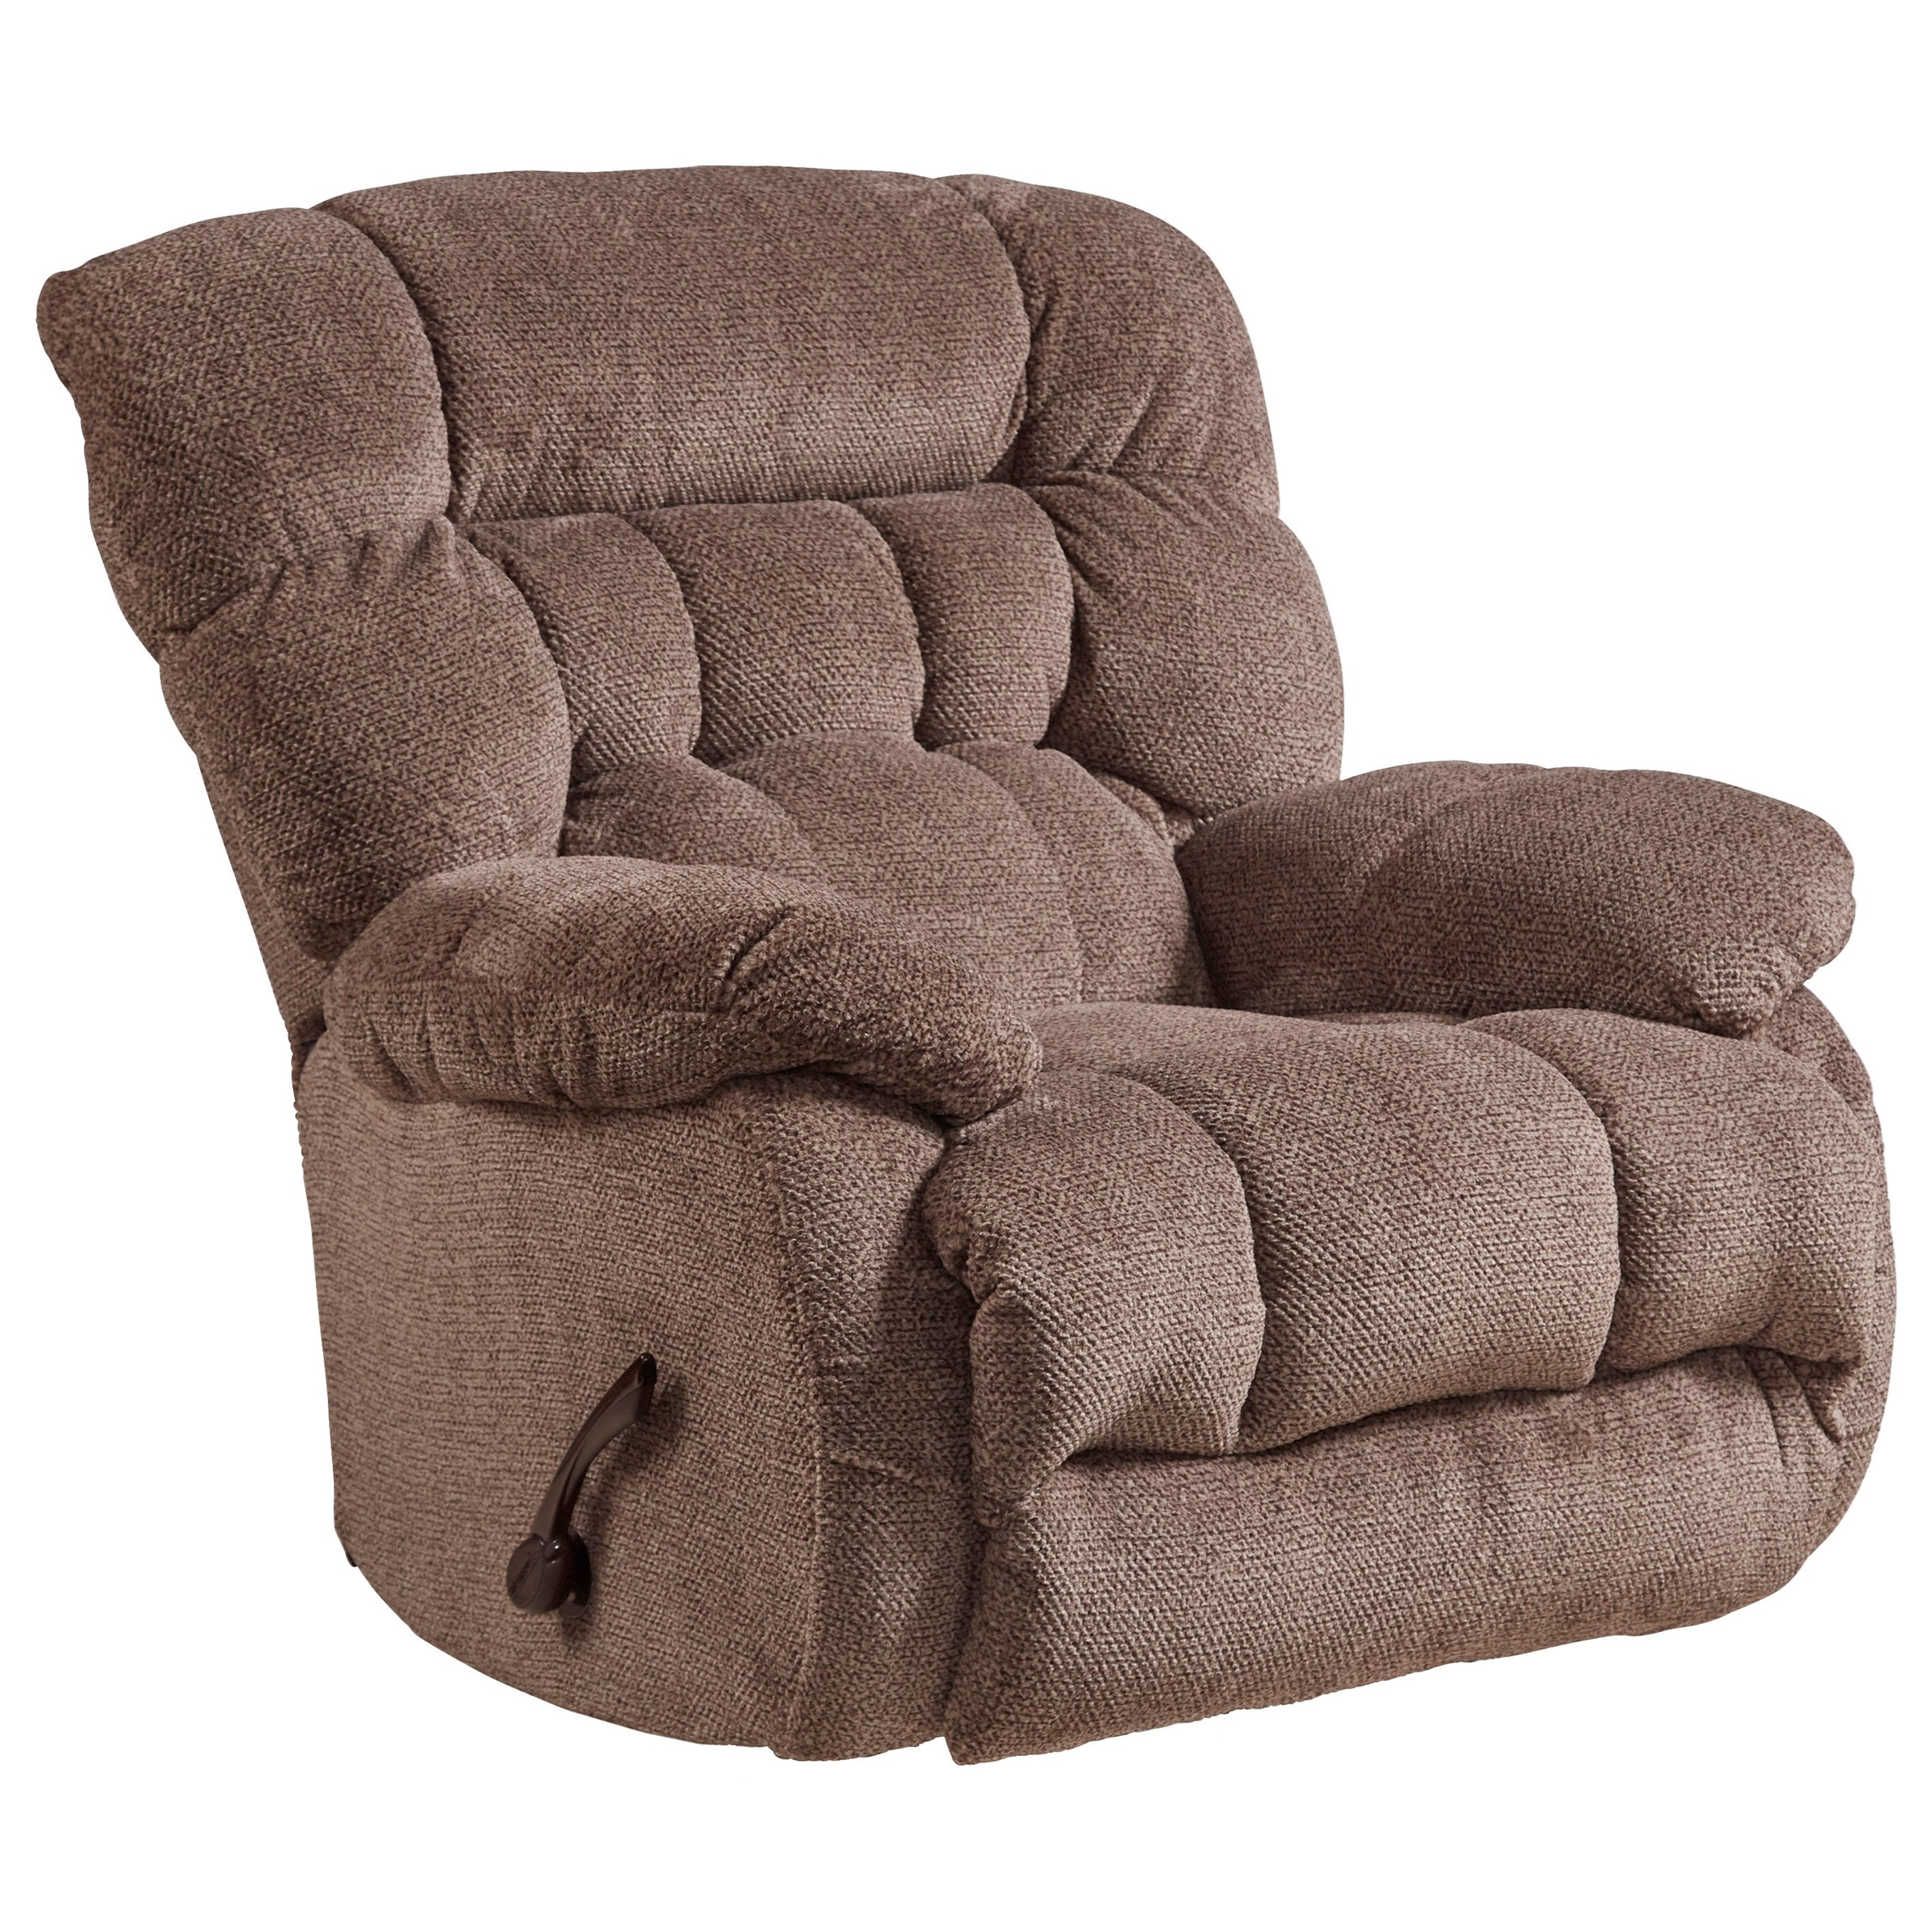 Daly Rocker Recliner by Catnapper at Crowley Furniture & Mattress